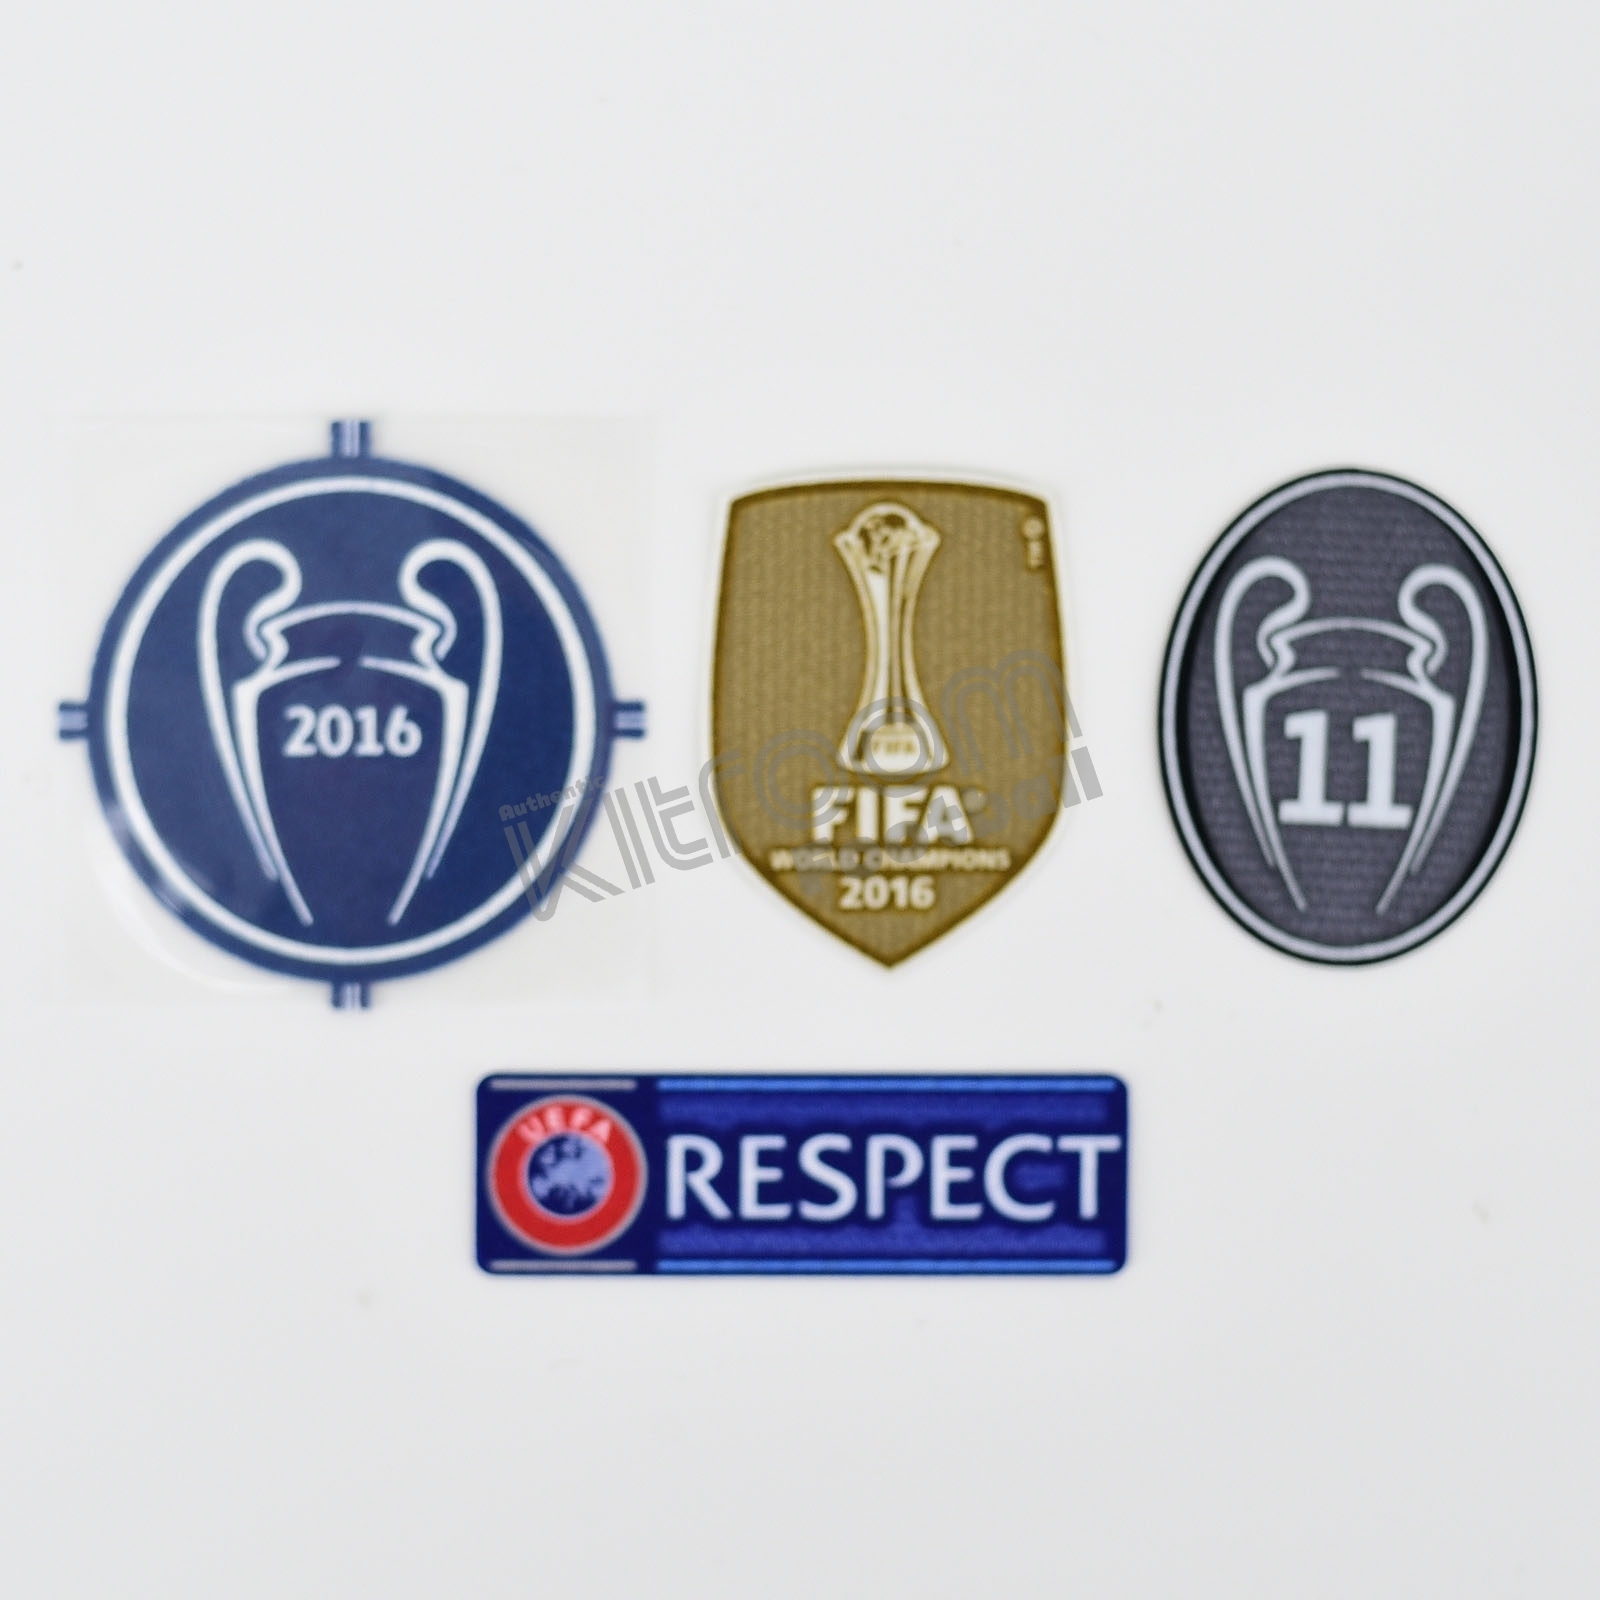 MDT Respect 12 BOH Official Champions League Final Real Madrid 2017 Winner